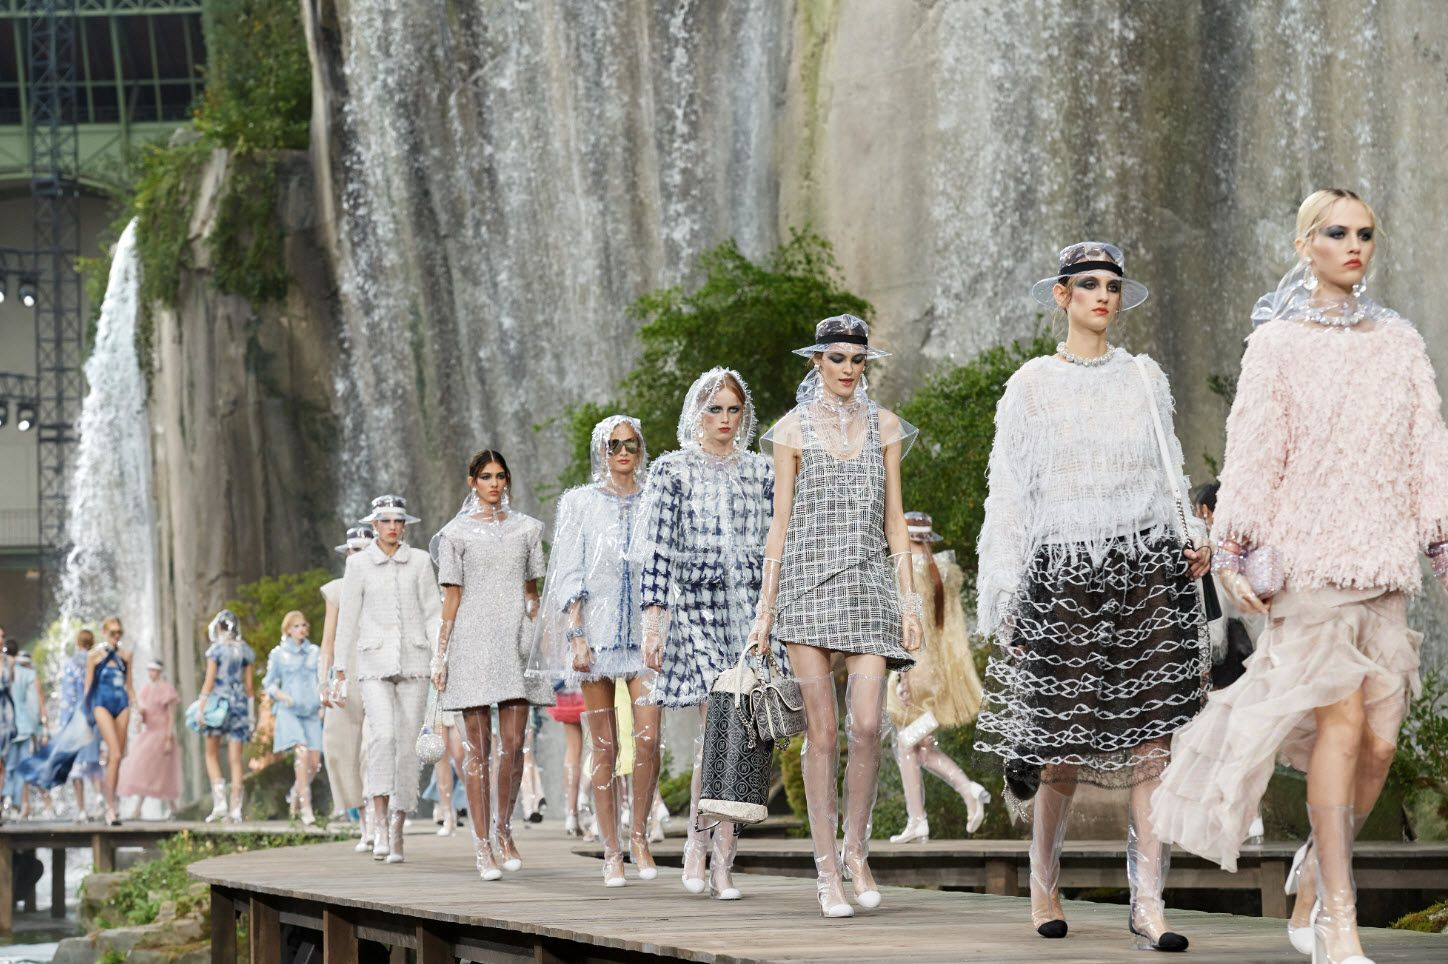 a929e075db2b 10 Standout Trends From The Spring Summer 2018 Runways